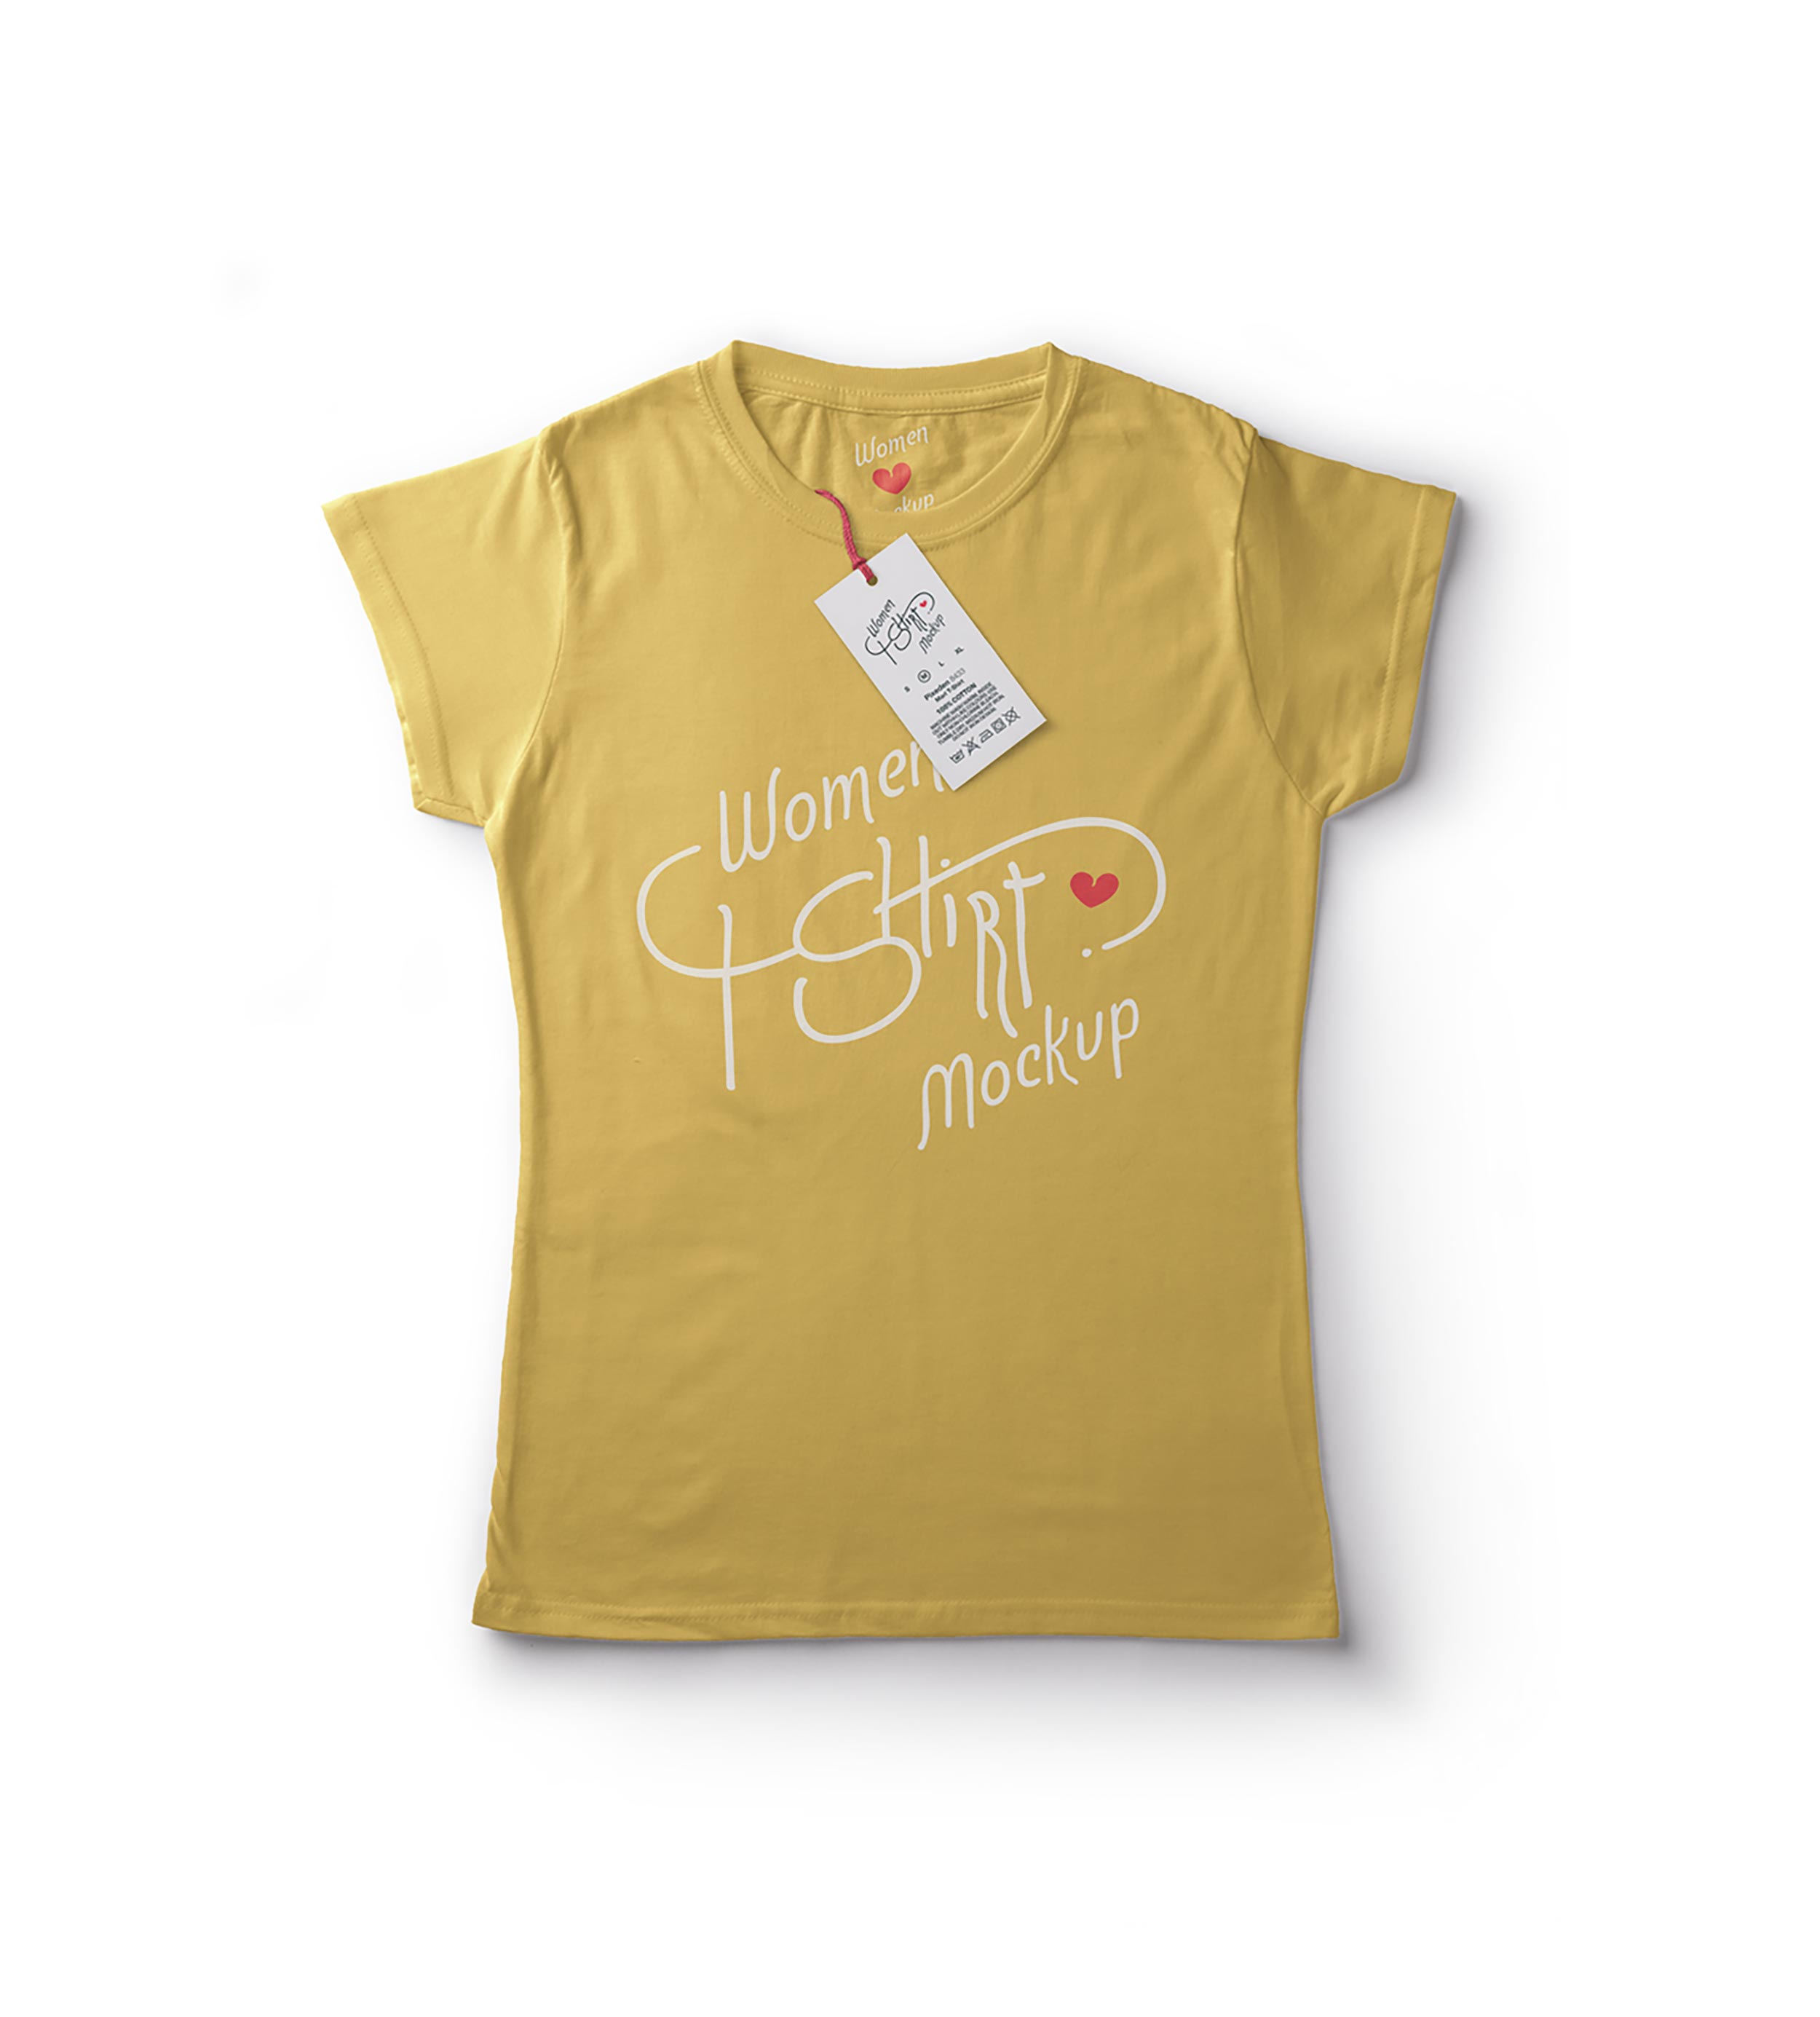 tee shirt women yellow